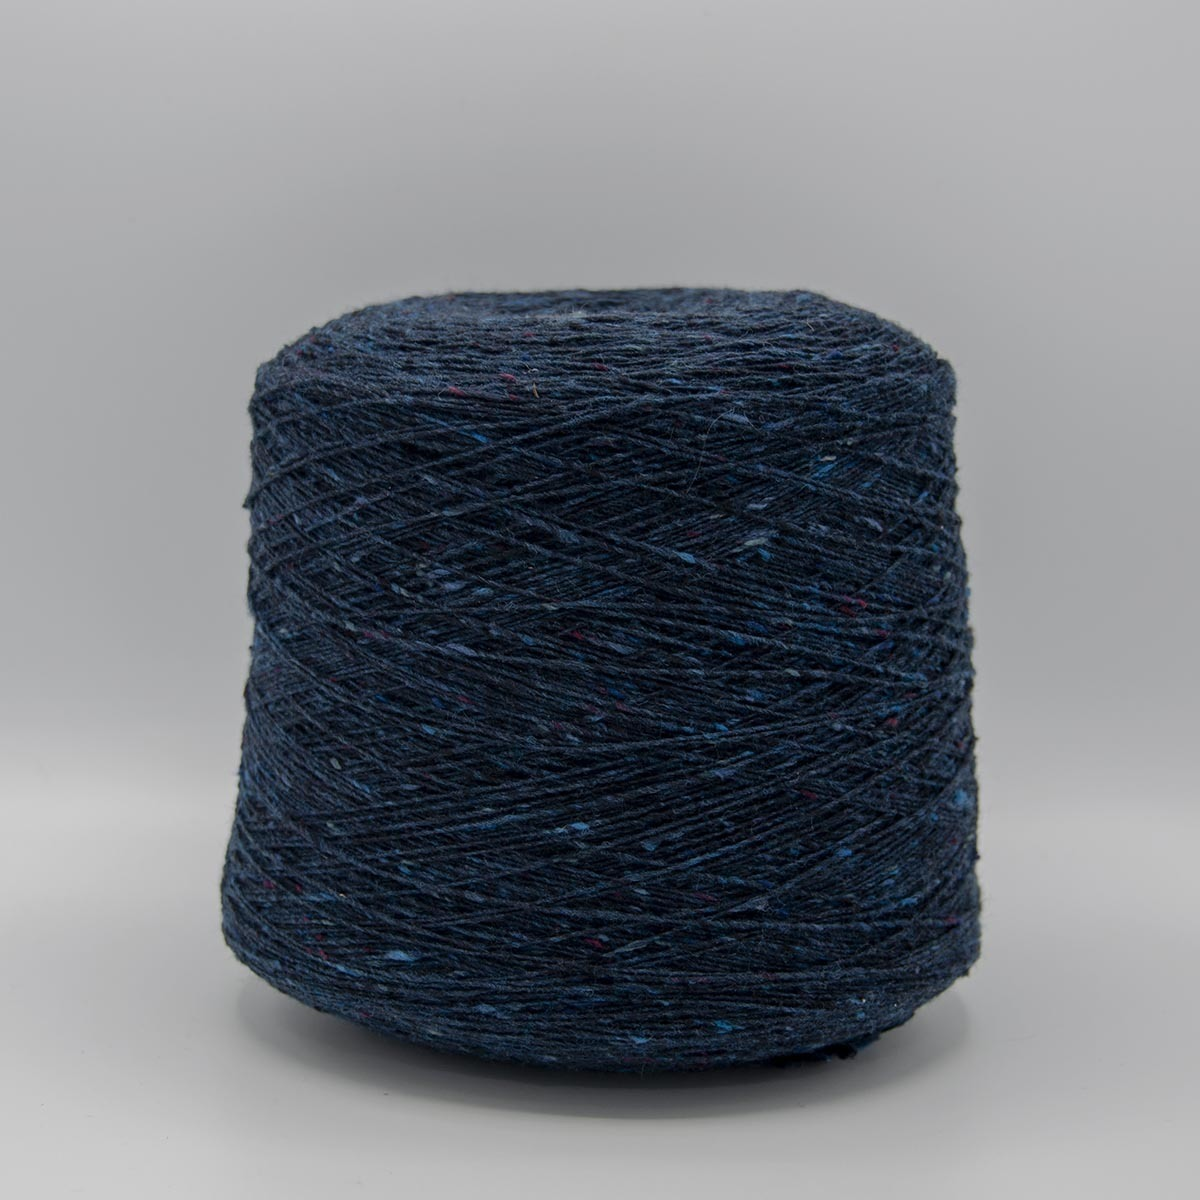 Knoll Yarns Soft Donegal (одинарный твид) - 5514